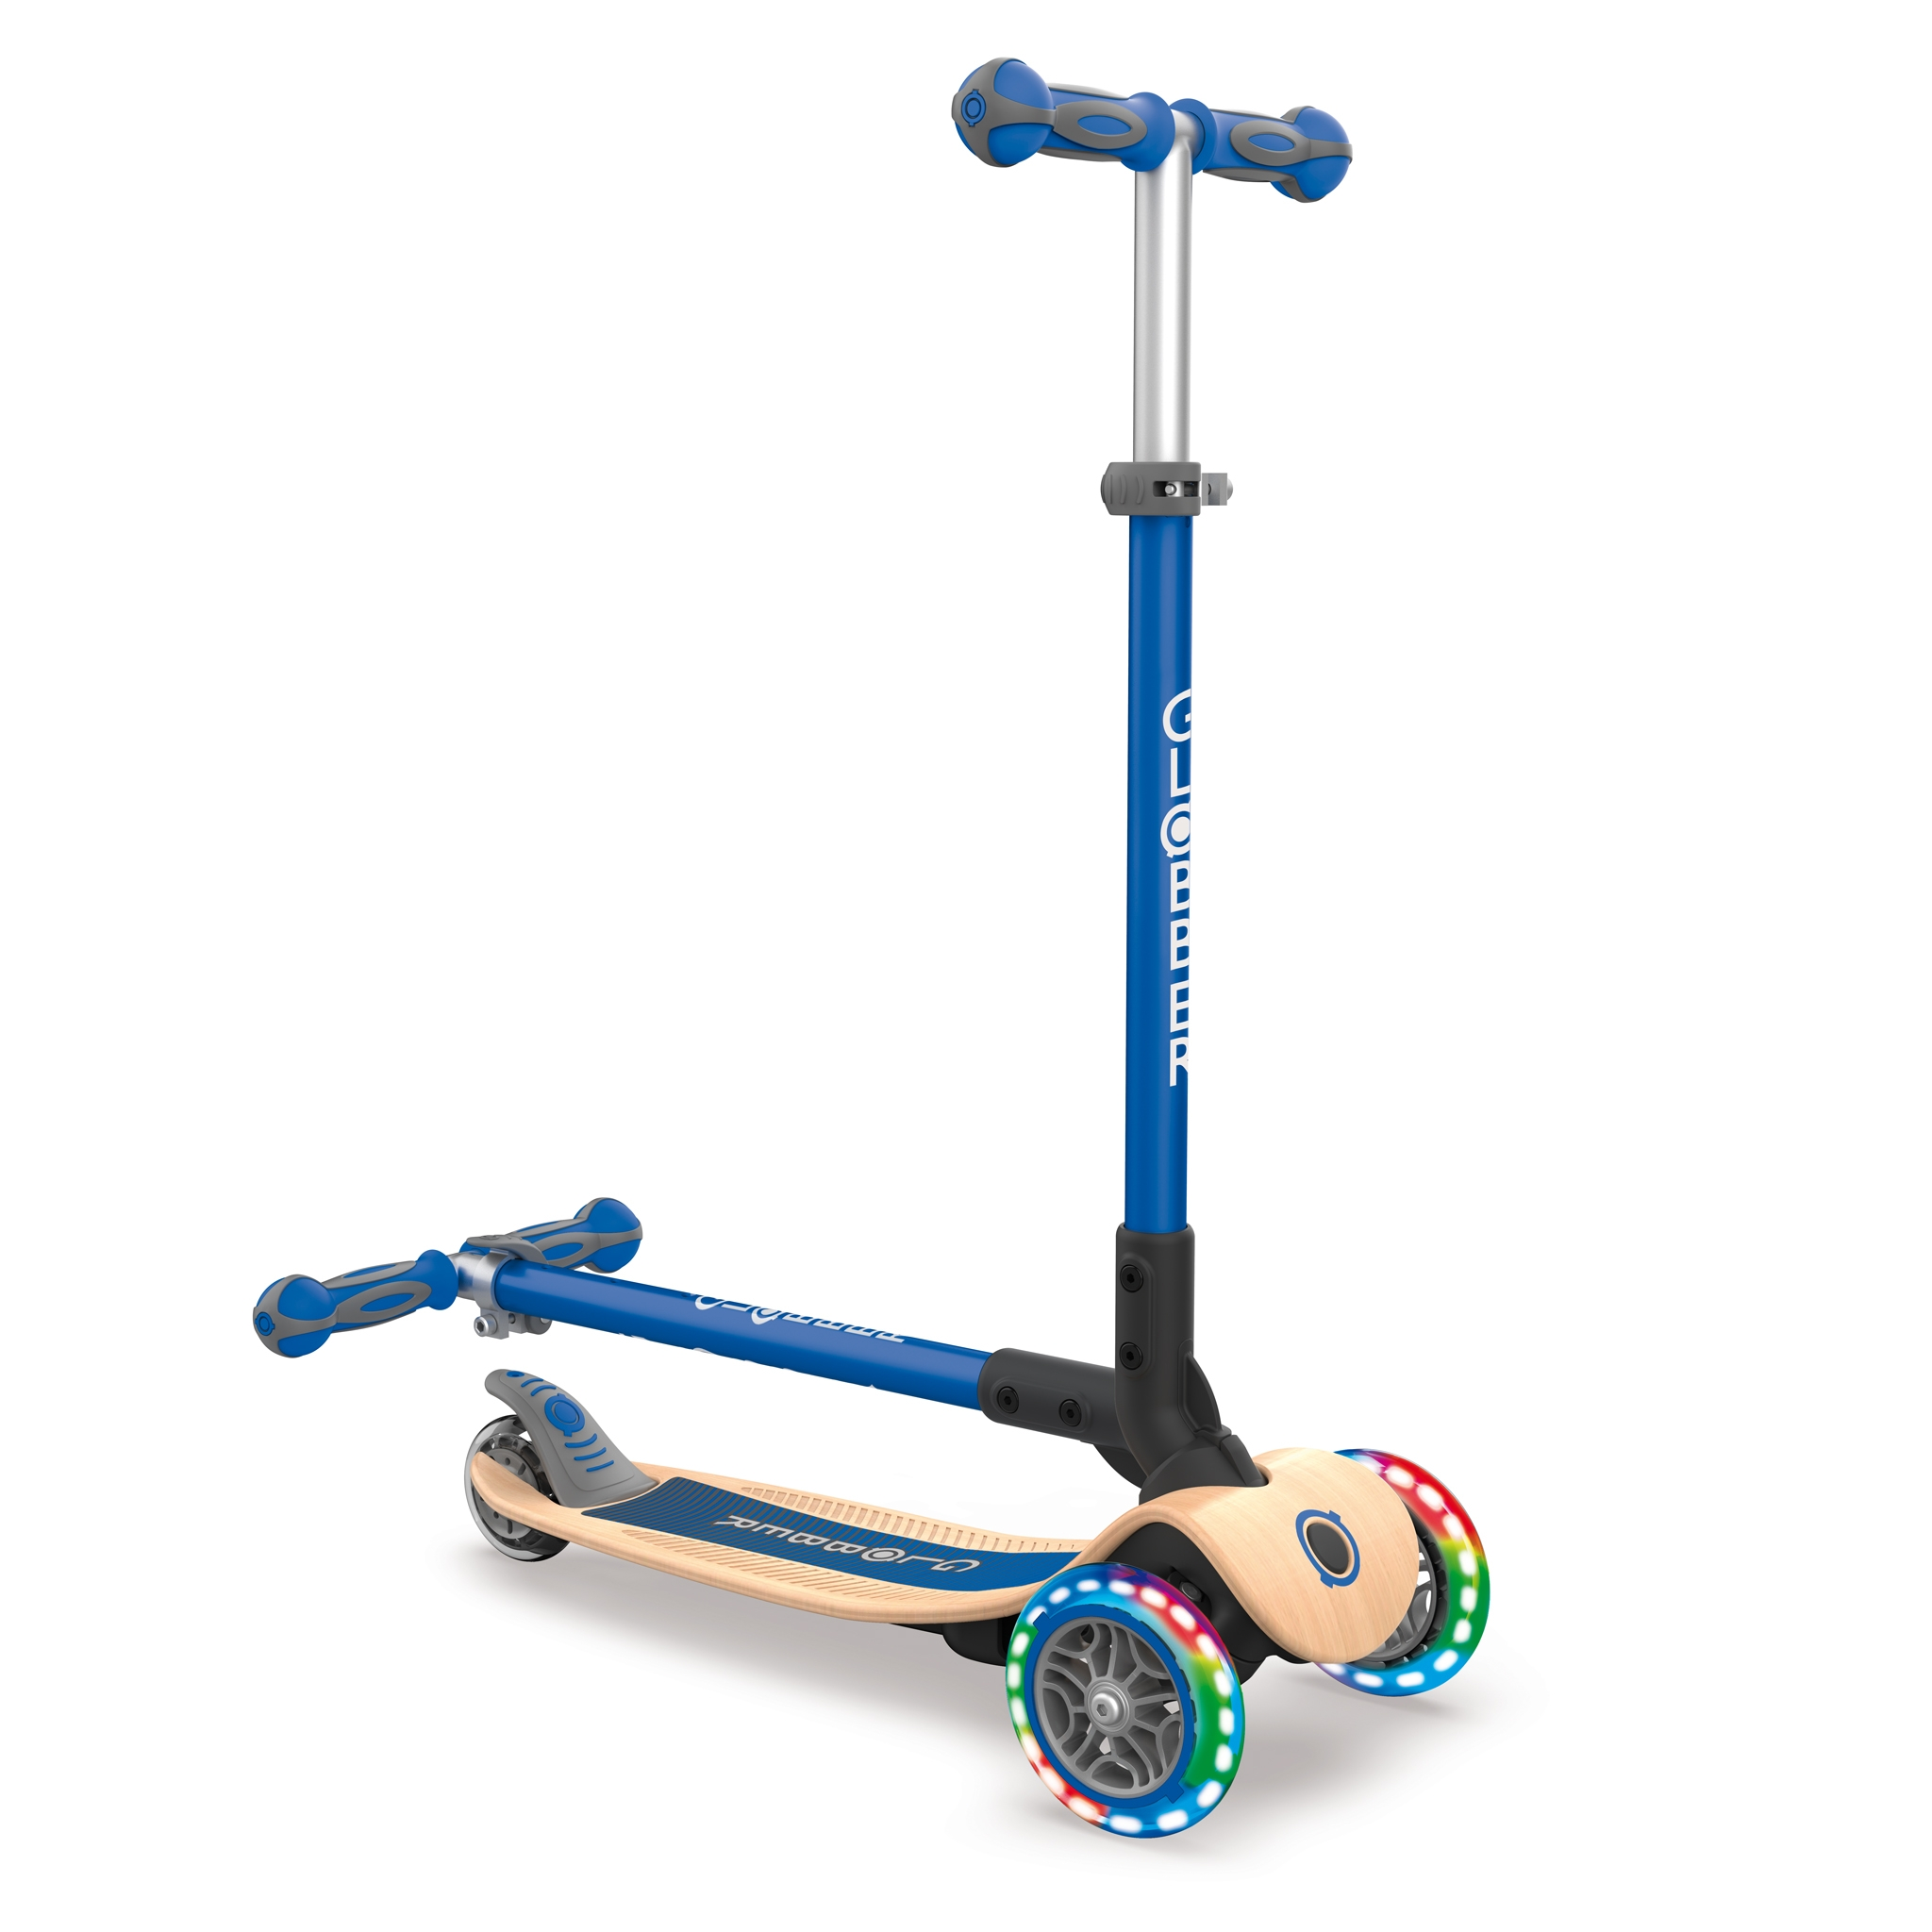 PRIMO-FOLDABLE-WOOD-LIGHTS-3-wheel-foldable-scooter-with-7-ply-wooden-scooter-deck-and-battery-free-light-up-wheels_navy-blue 2